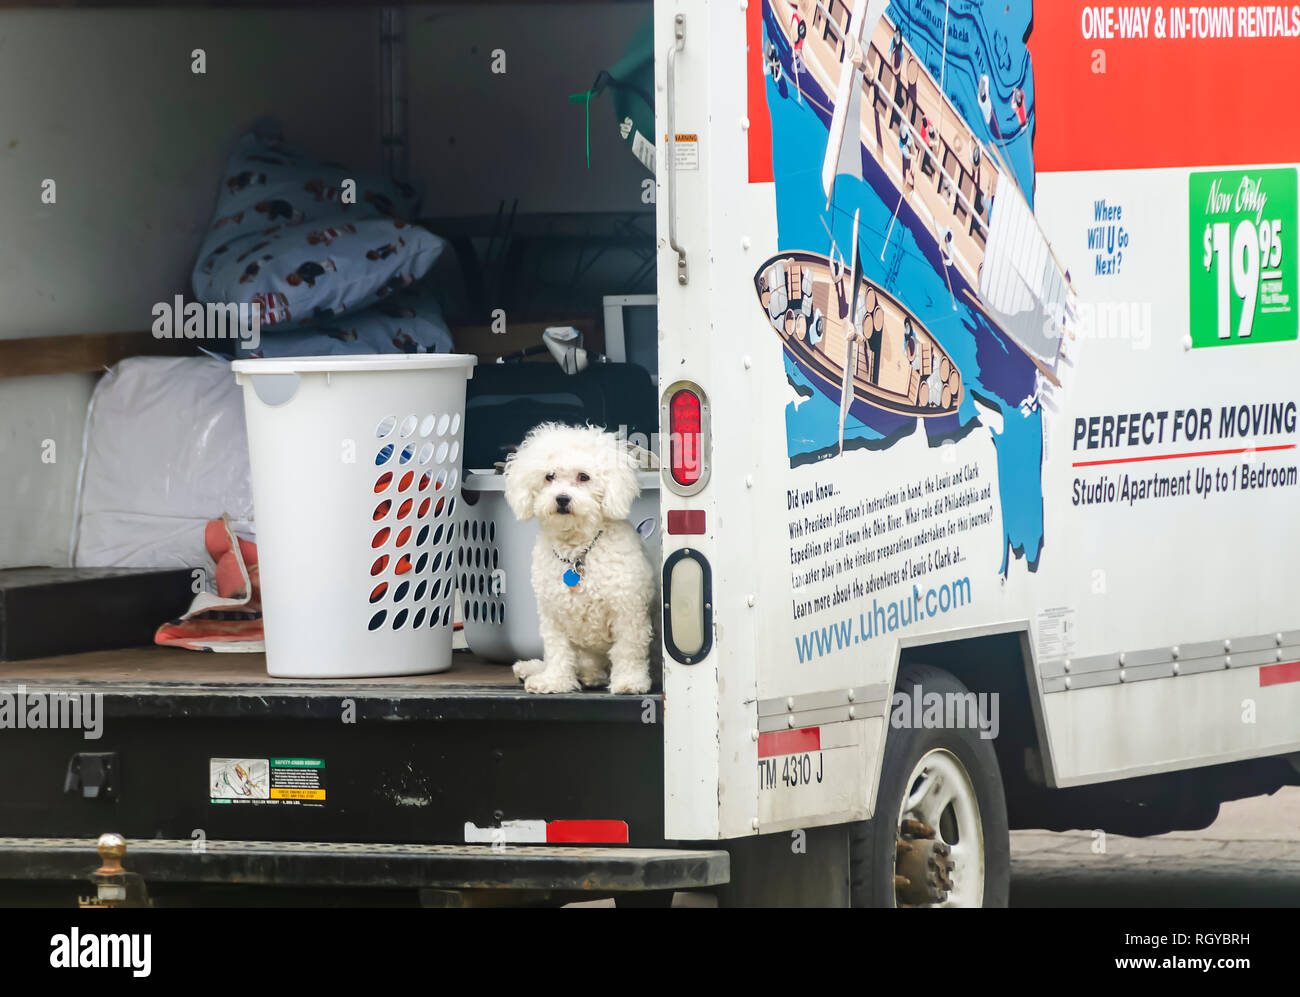 Man's best friend! A Bolognese dog waits patiently for its owner in a UHaul van parked outside of an apartment complex in Michigan, USA. - Stock Image